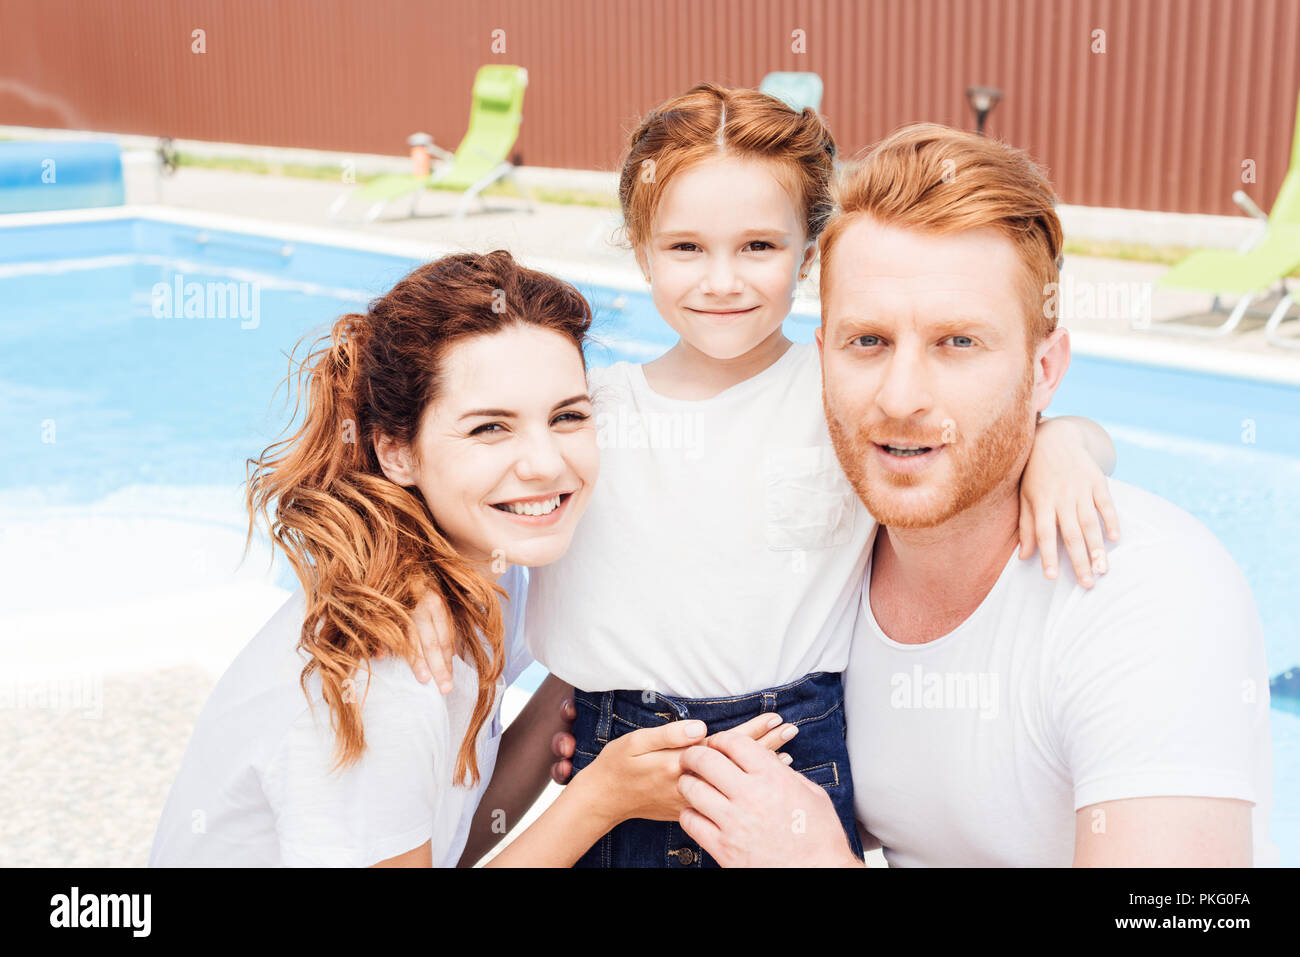 beautiful young family embracing in front of swimming pool and looking at camera - Stock Image